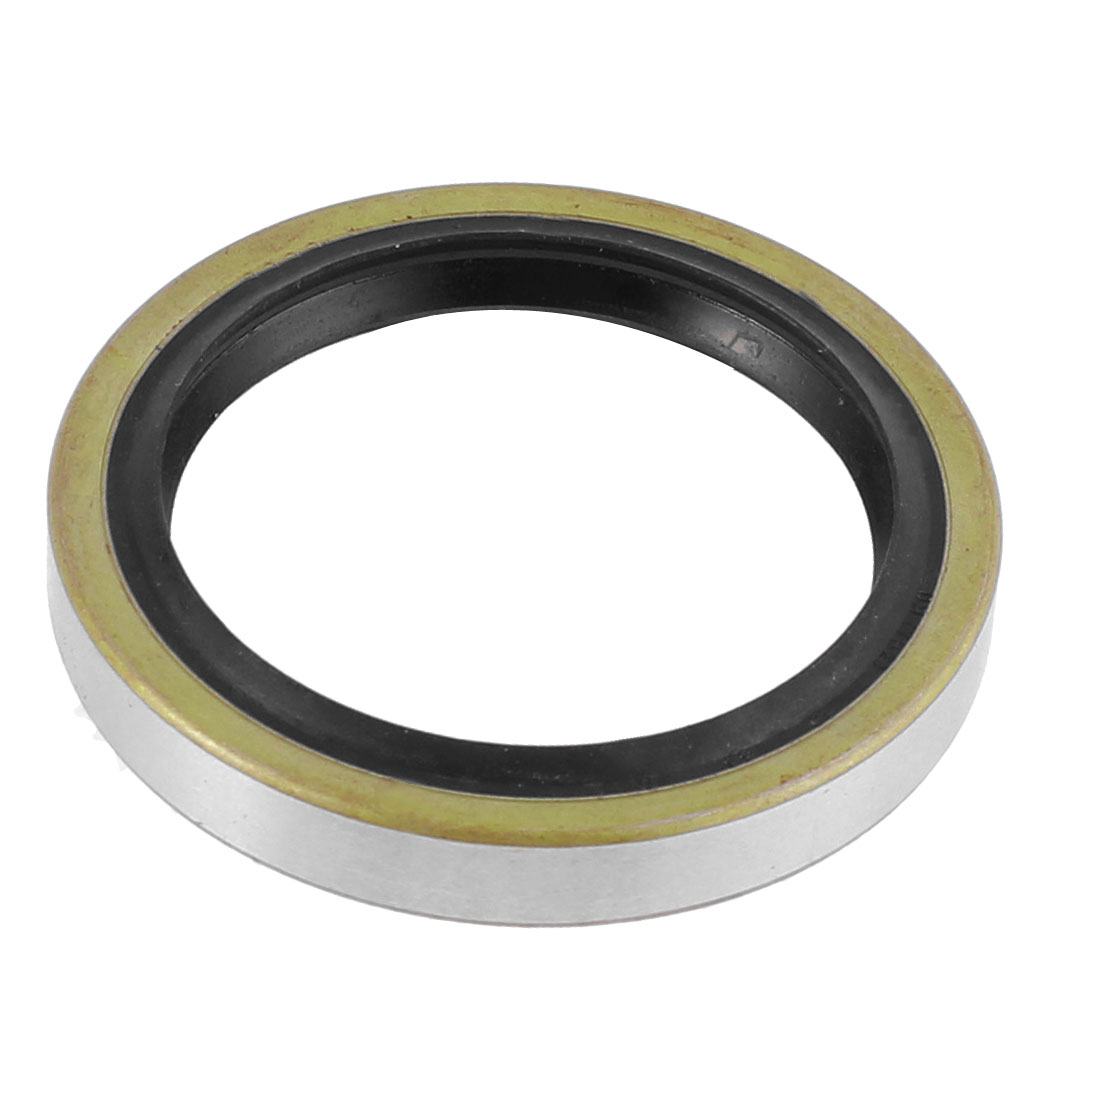 Auto Car Vehicle Front Wheel Oil Seal Gasket Washer 48mm x 65mm x 9mm